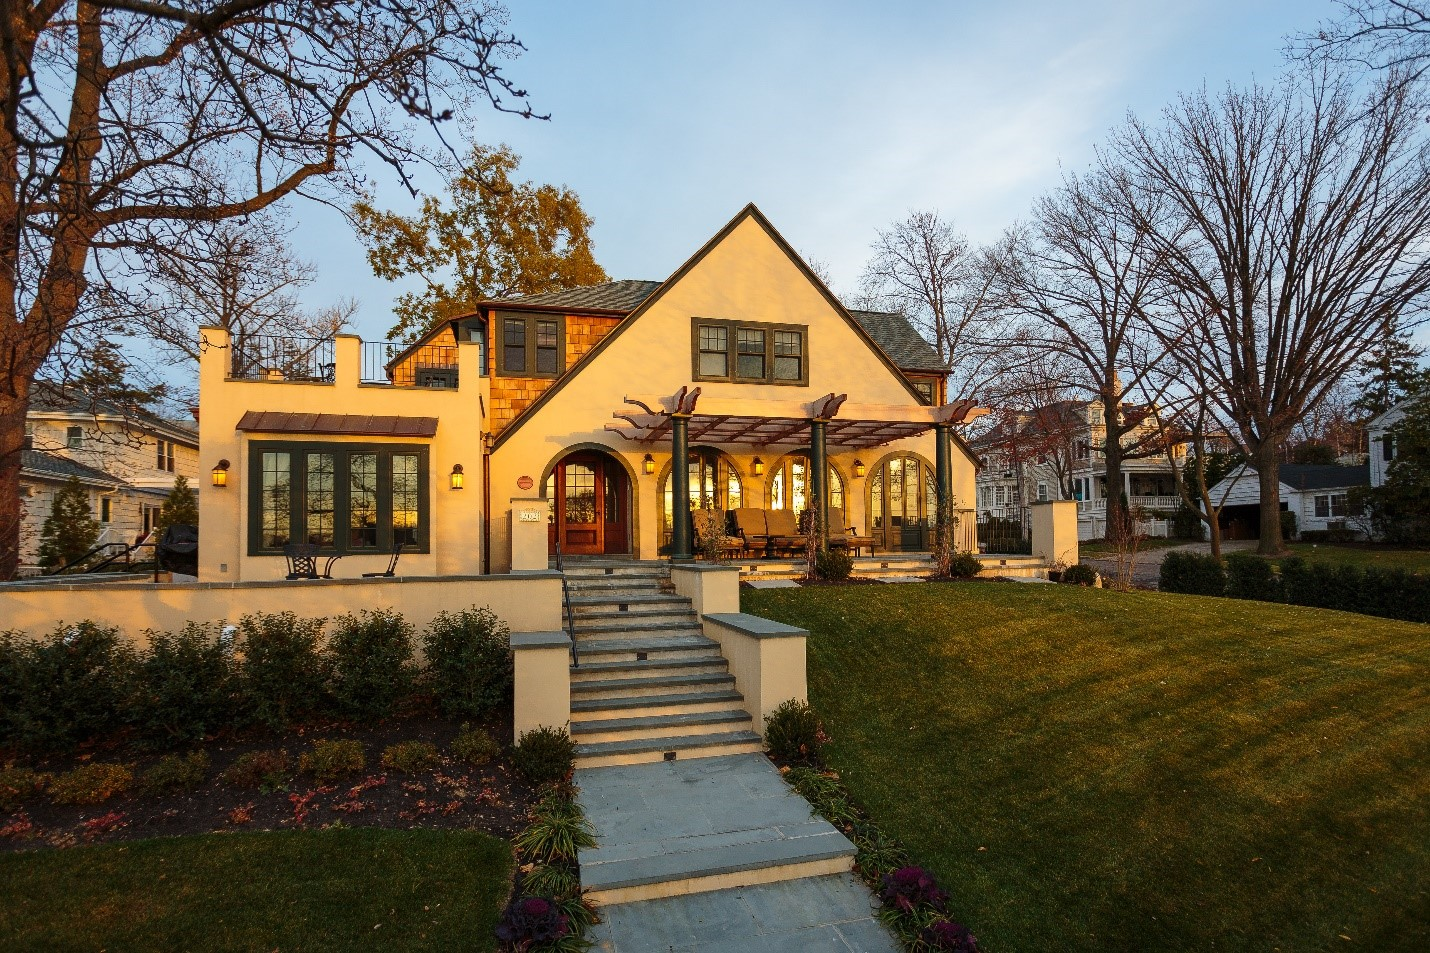 The Chan Lee Residence in Douglaston won second prize for best interior design among single- and two-family residence.